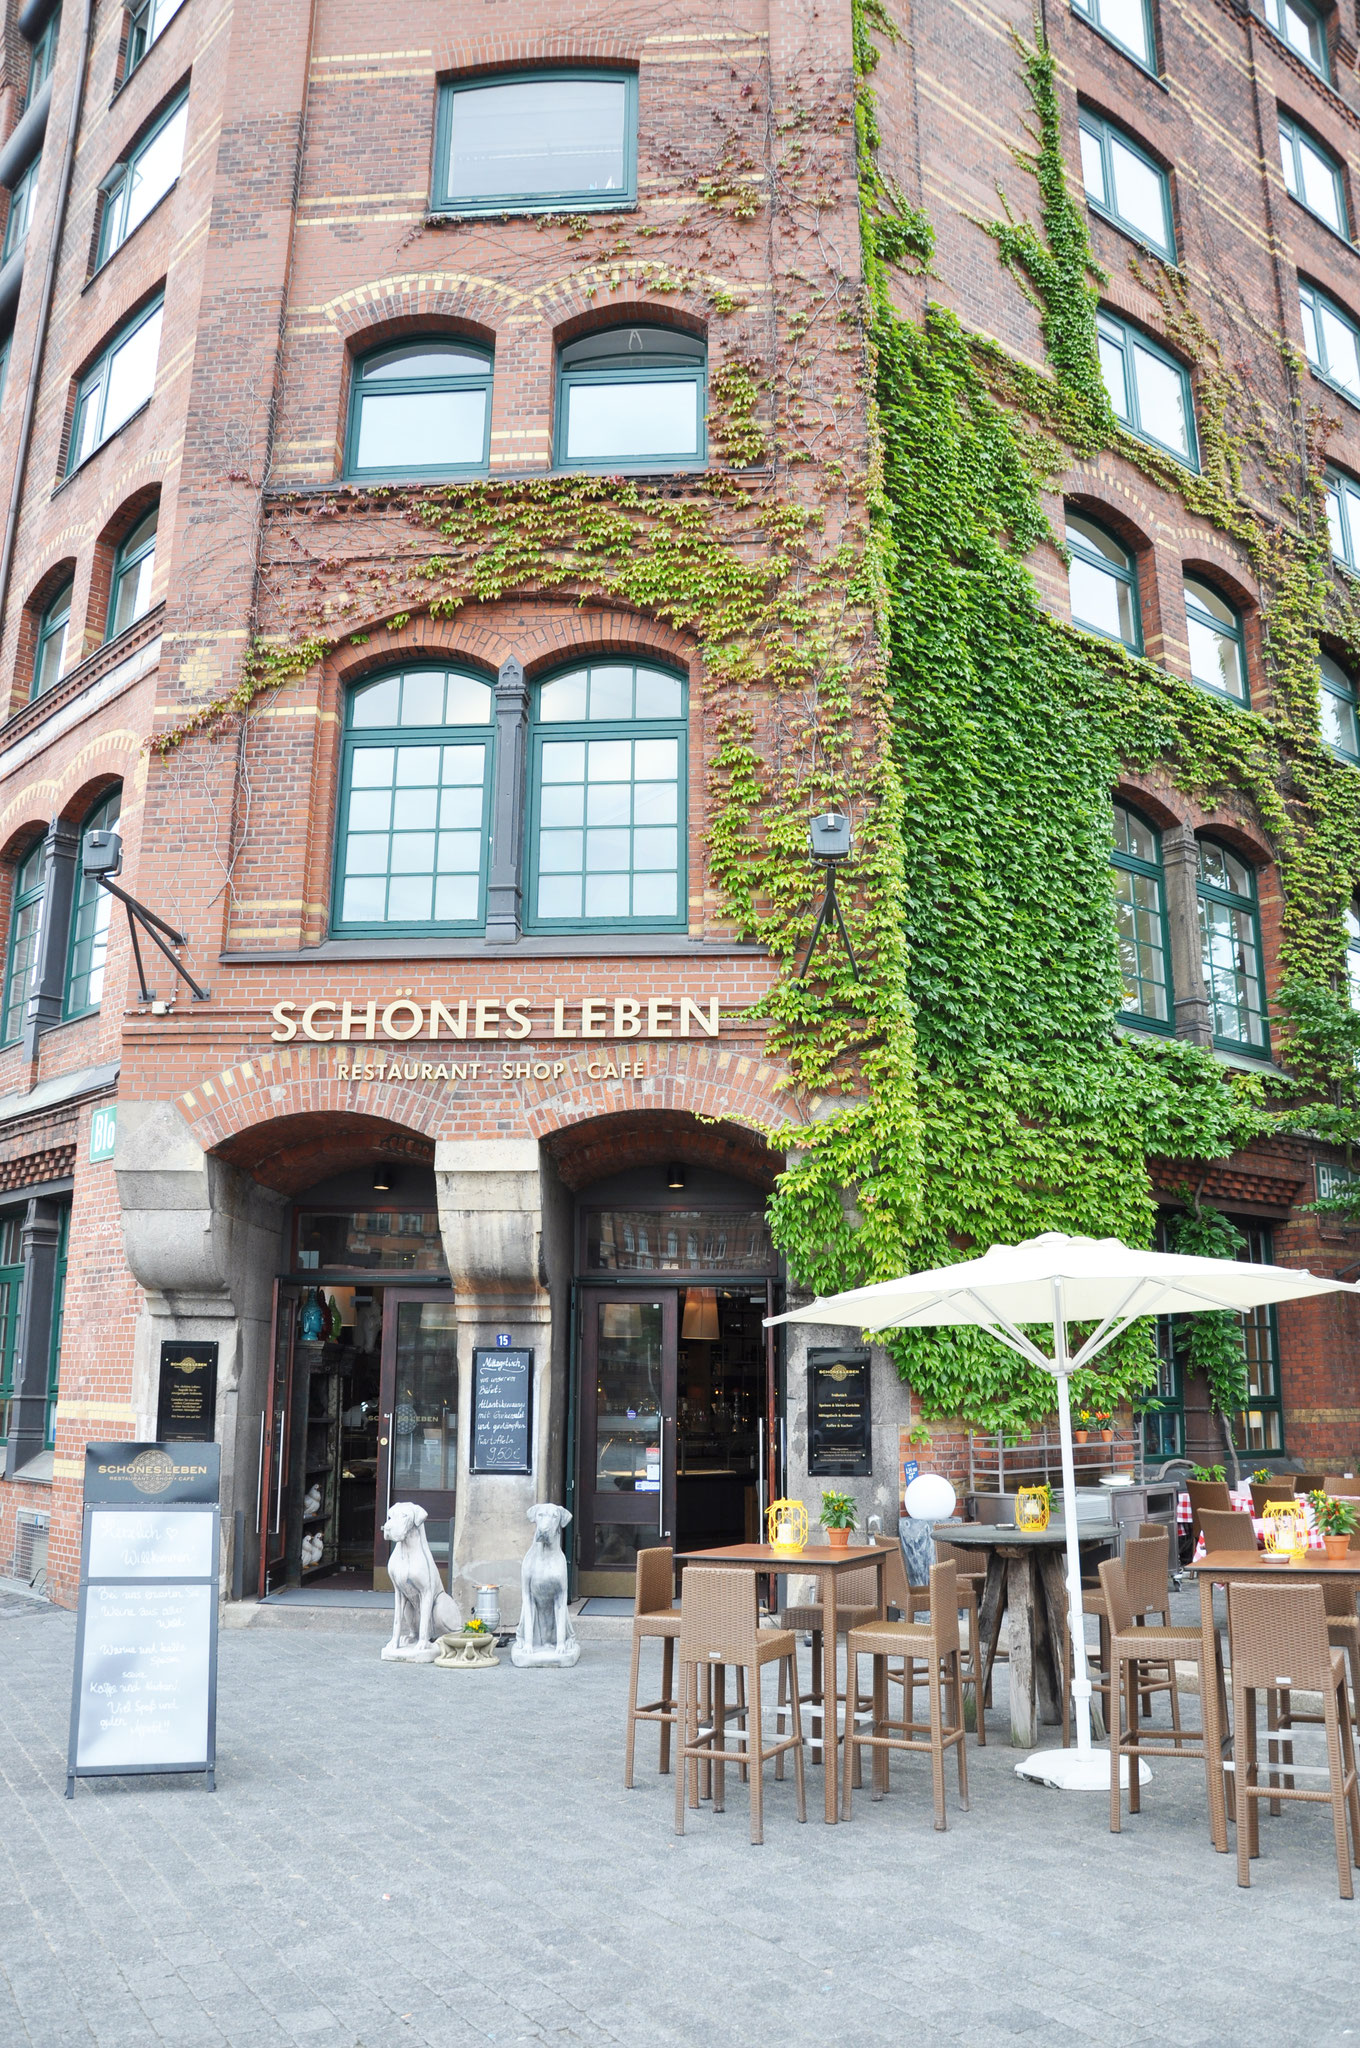 bilder speicherstadt sch nes leben restaurant hamburg neuendeich. Black Bedroom Furniture Sets. Home Design Ideas